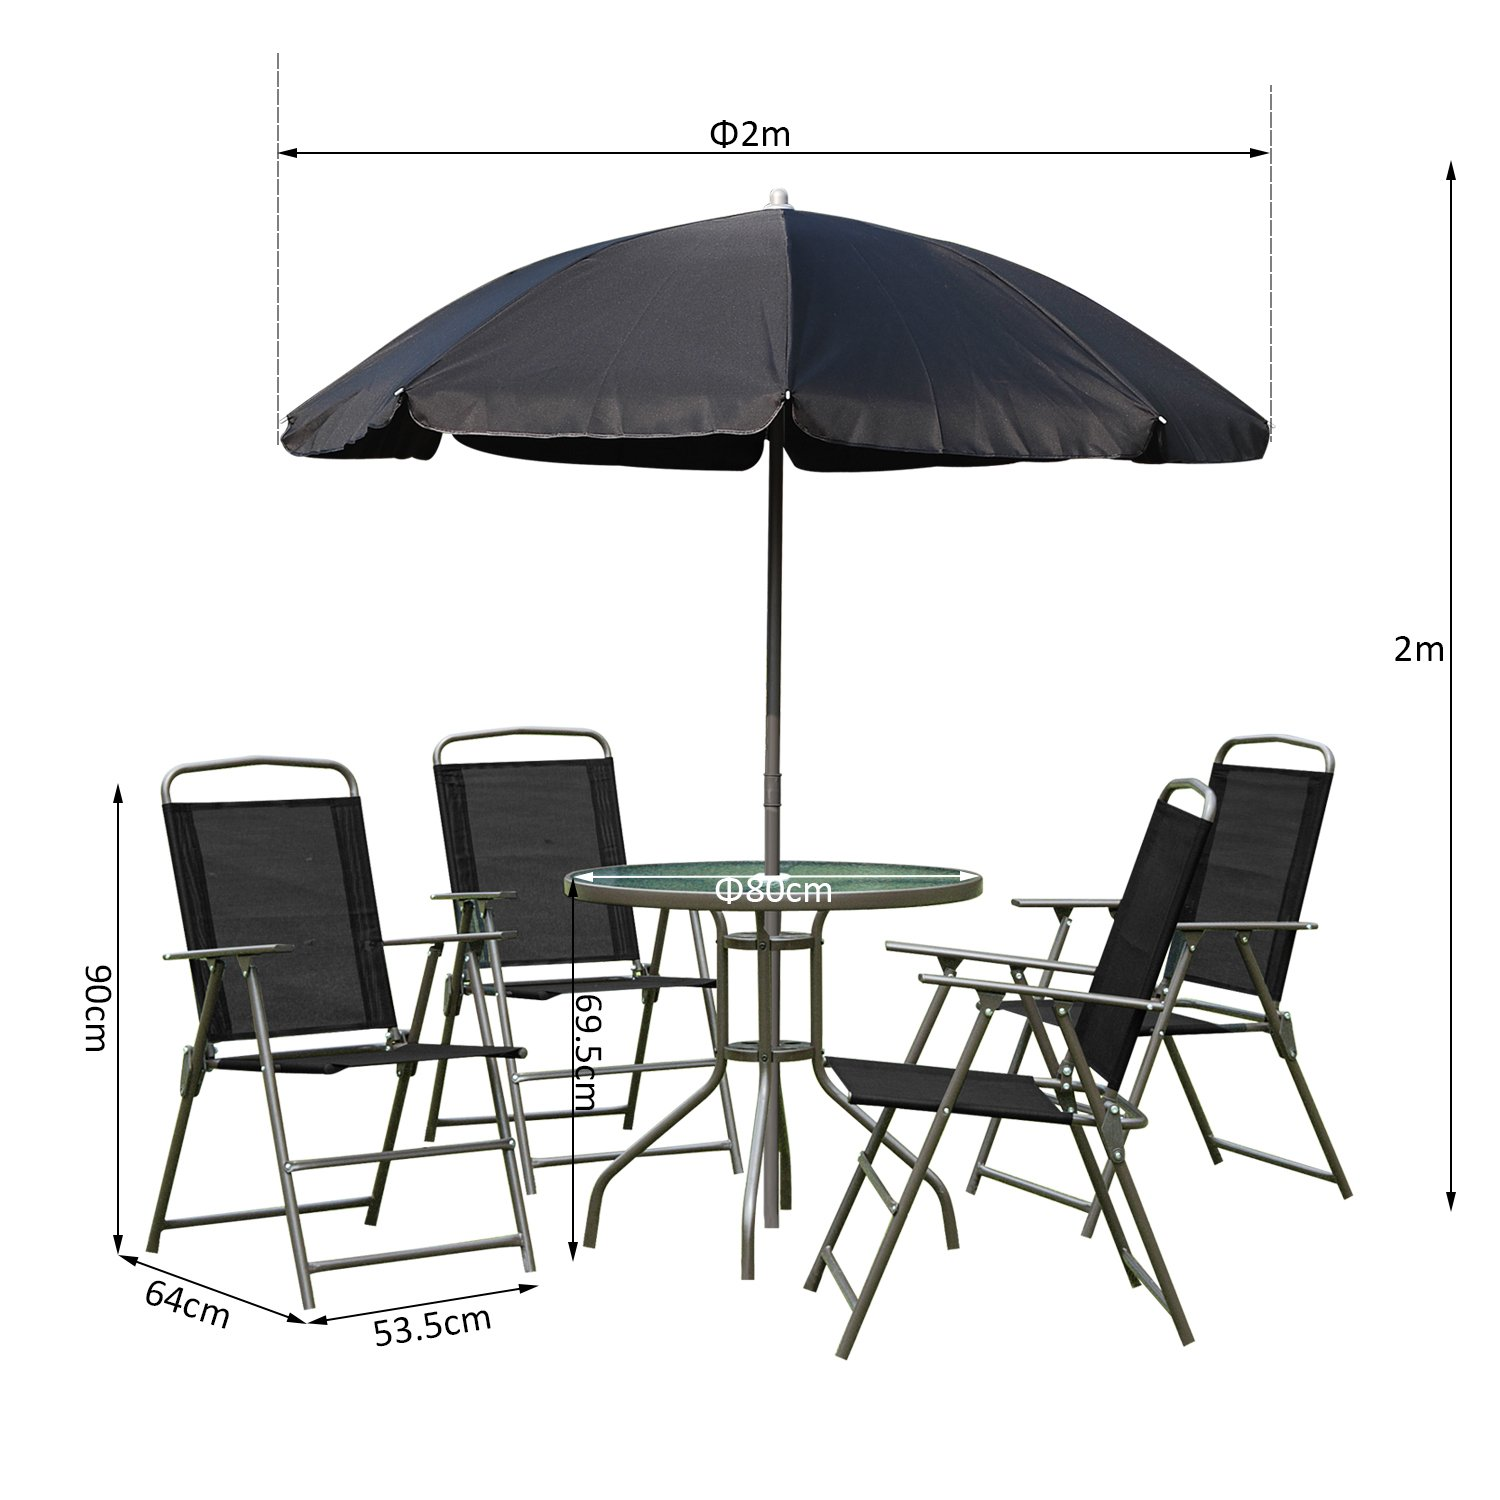 Outsunny 6 PCs Garden Patio Furniture Set Bistro Set Textilene